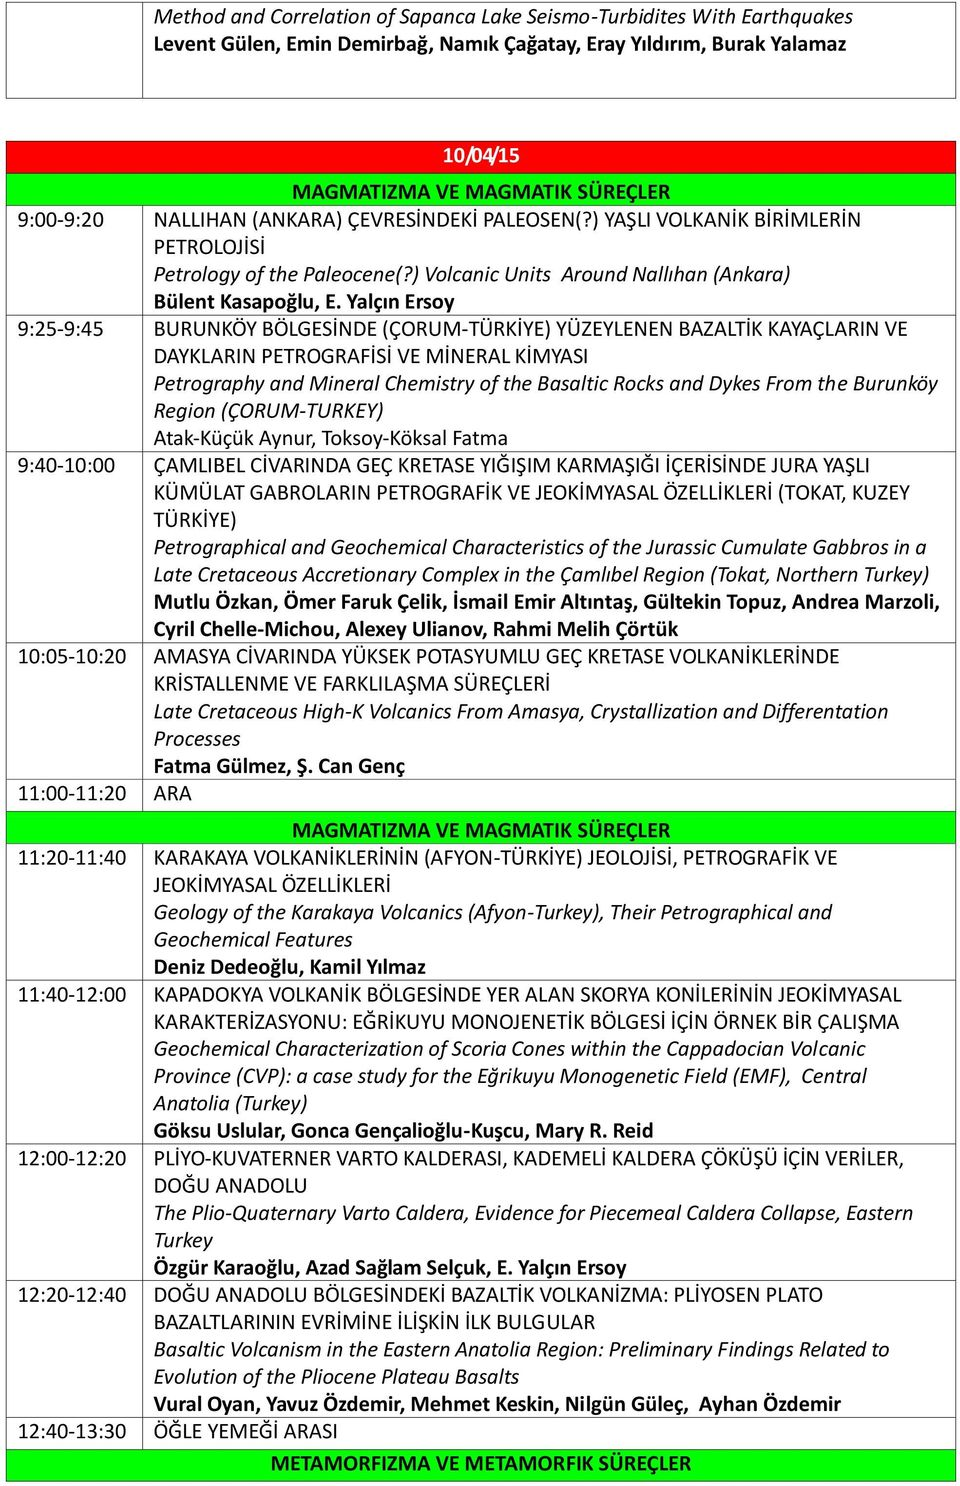 Yalçın Ersoy 9:25-9:45 BURUNKÖY BÖLGESİNDE (ÇORUM-TÜRKİYE) YÜZEYLENEN BAZALTİK KAYAÇLARIN VE DAYKLARIN PETROGRAFİSİ VE MİNERAL KİMYASI Petrography and Mineral Chemistry of the Basaltic Rocks and